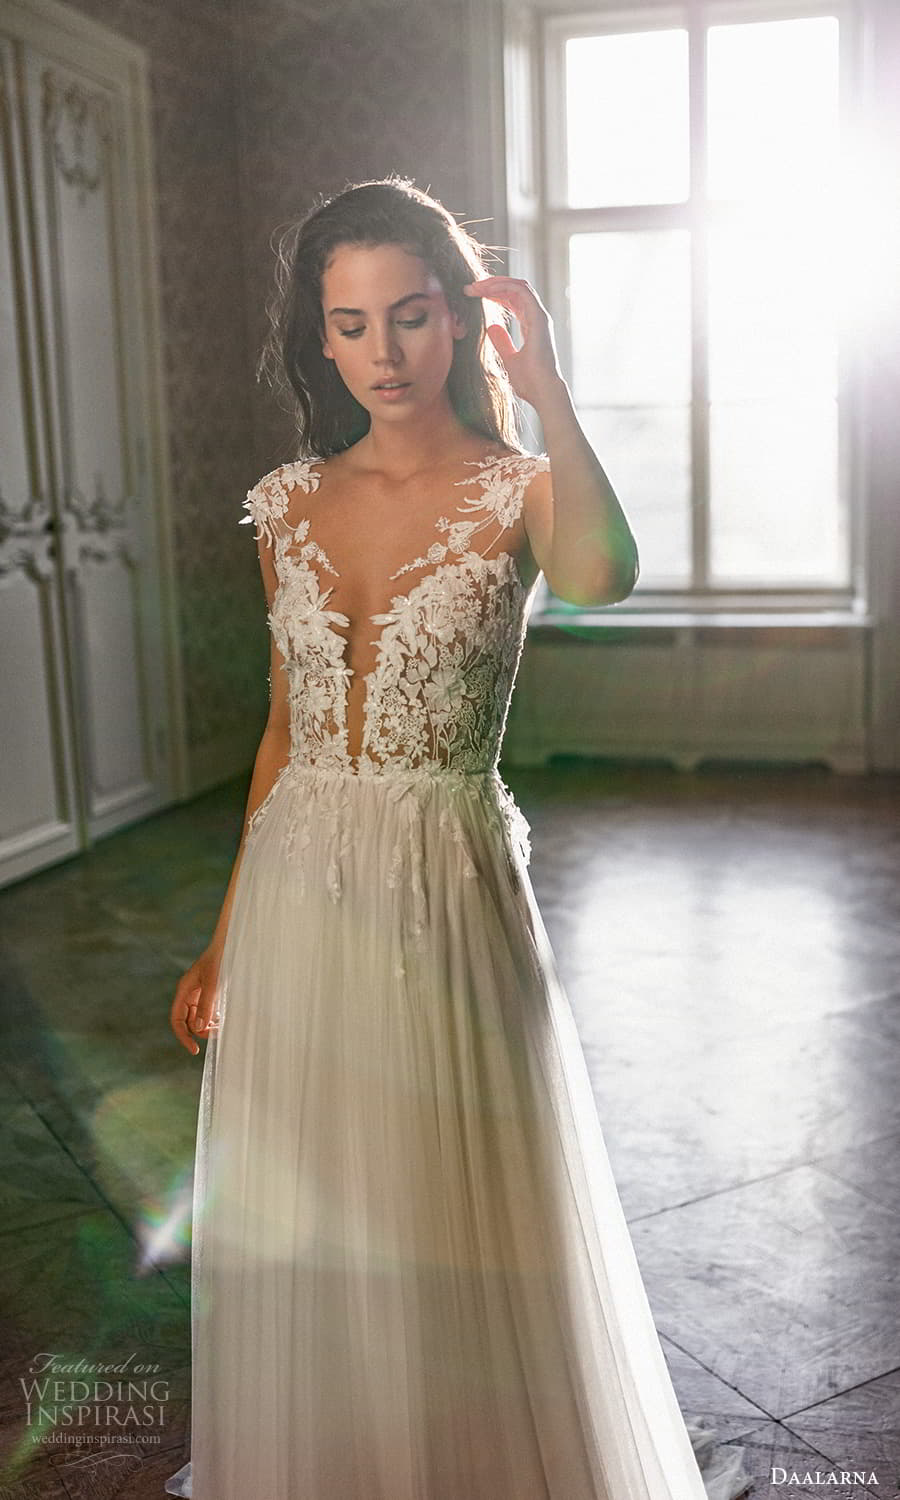 daalarna spring 2022 bridal cap sleeves plunging v neckline embellished bodice a line ball gown wedding dress sweep train (16) zv